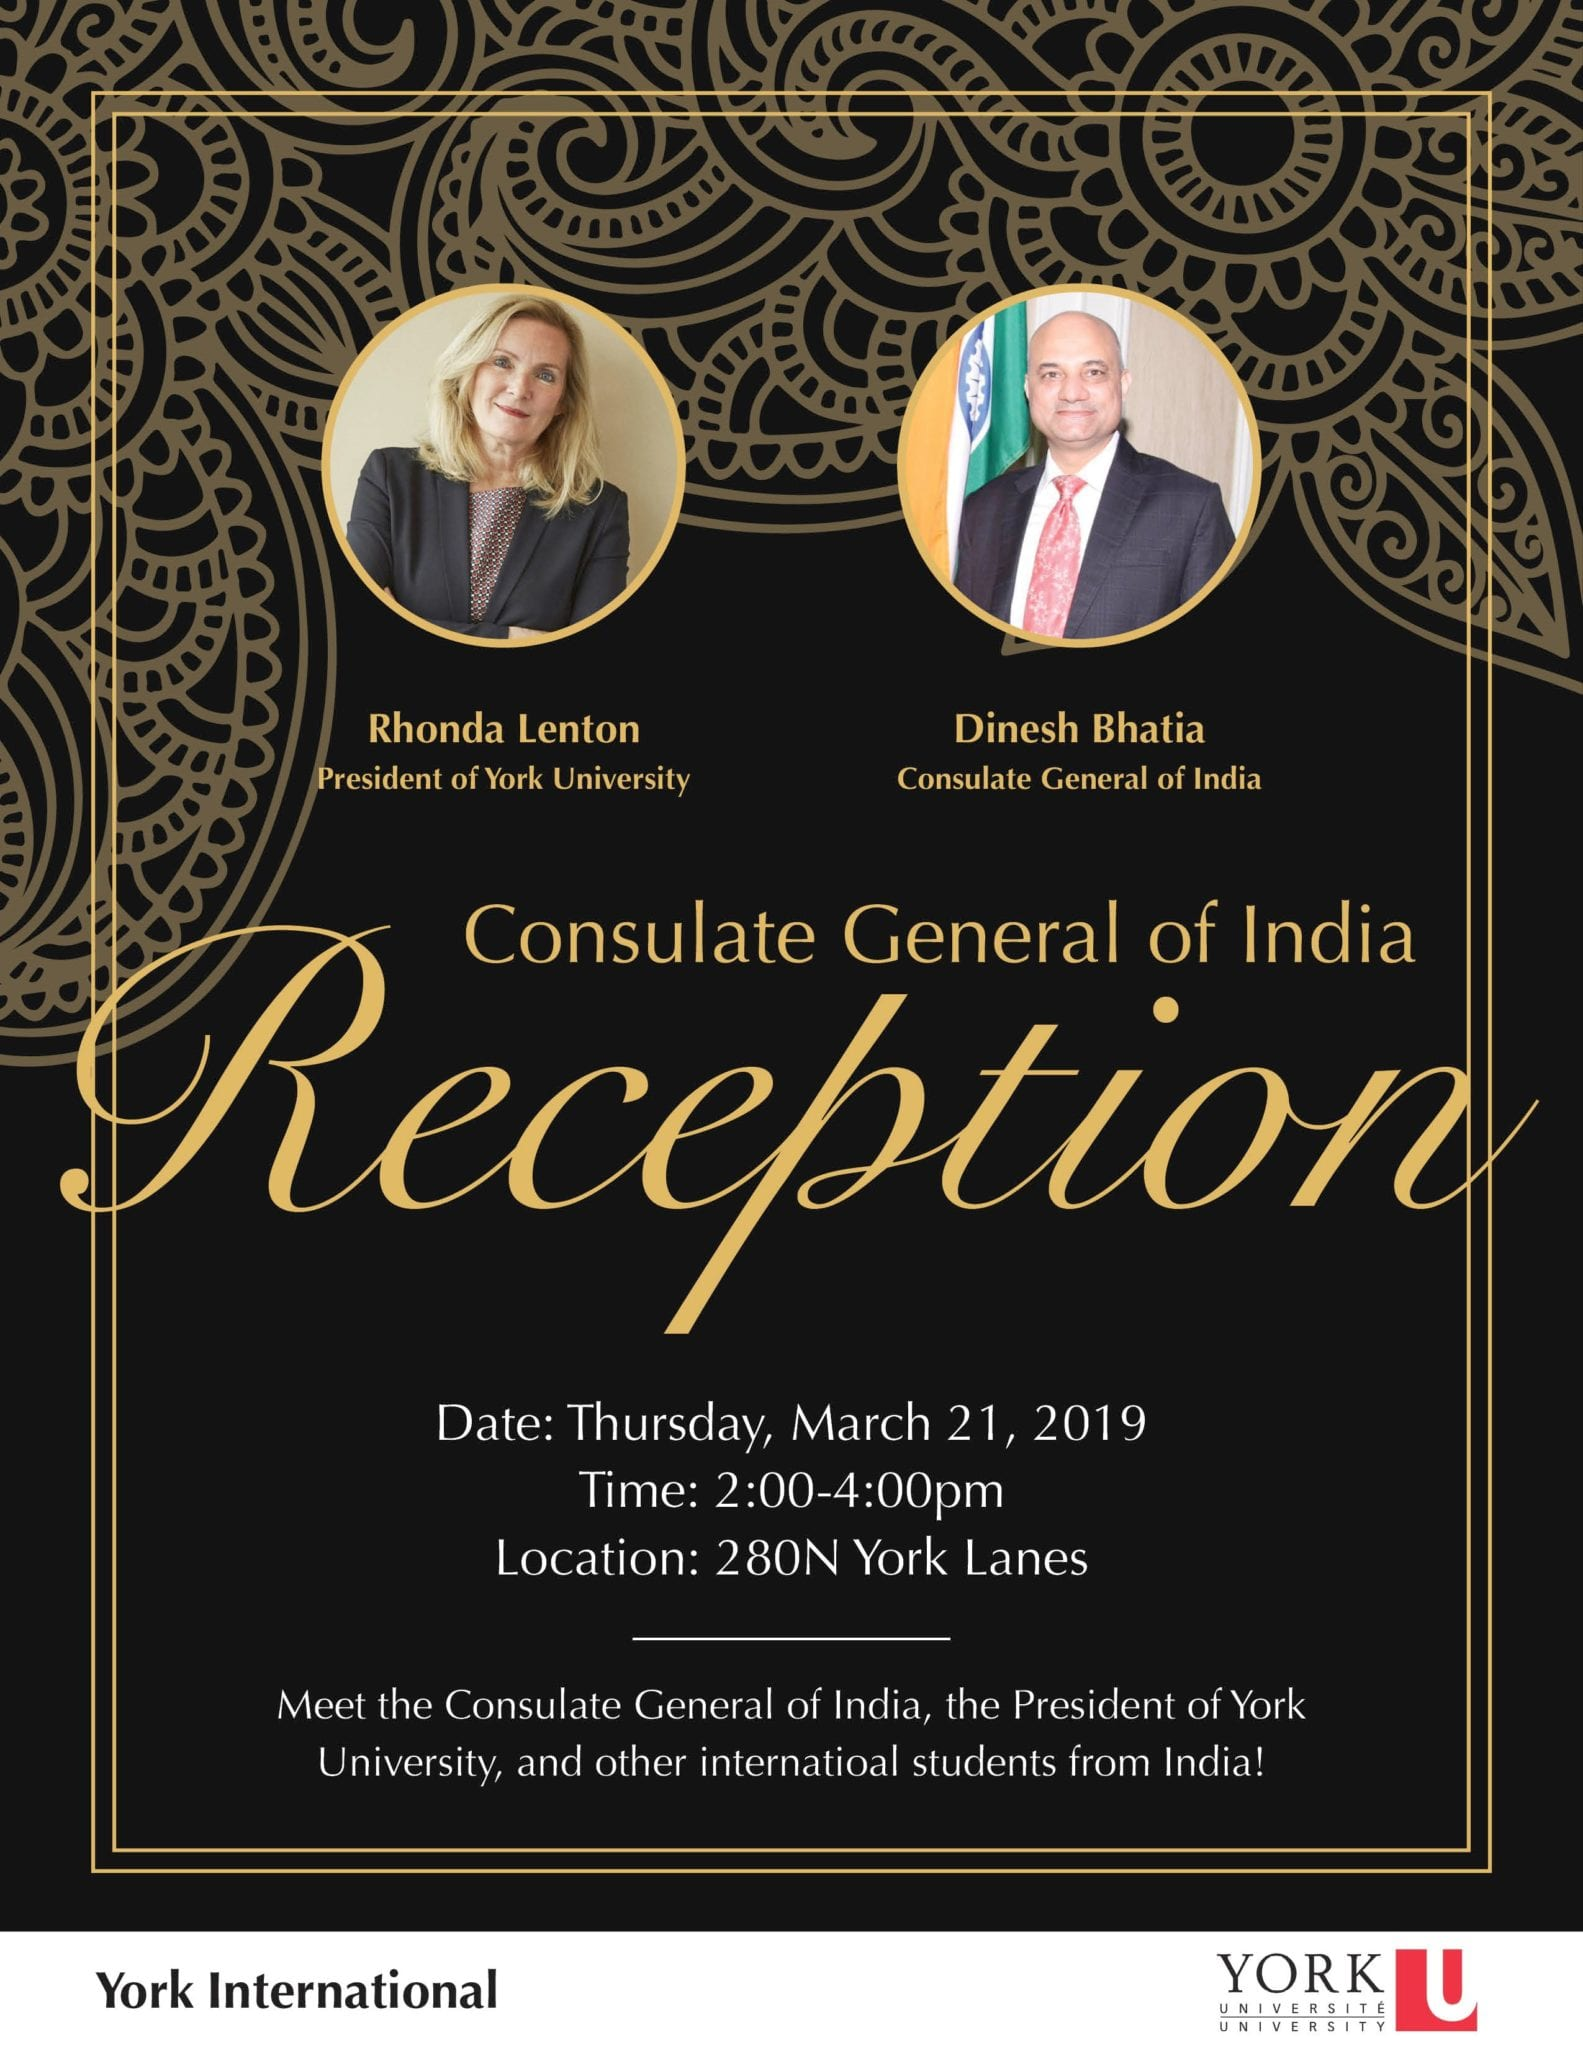 Consulate General of India Reception @ 280N York Lanes